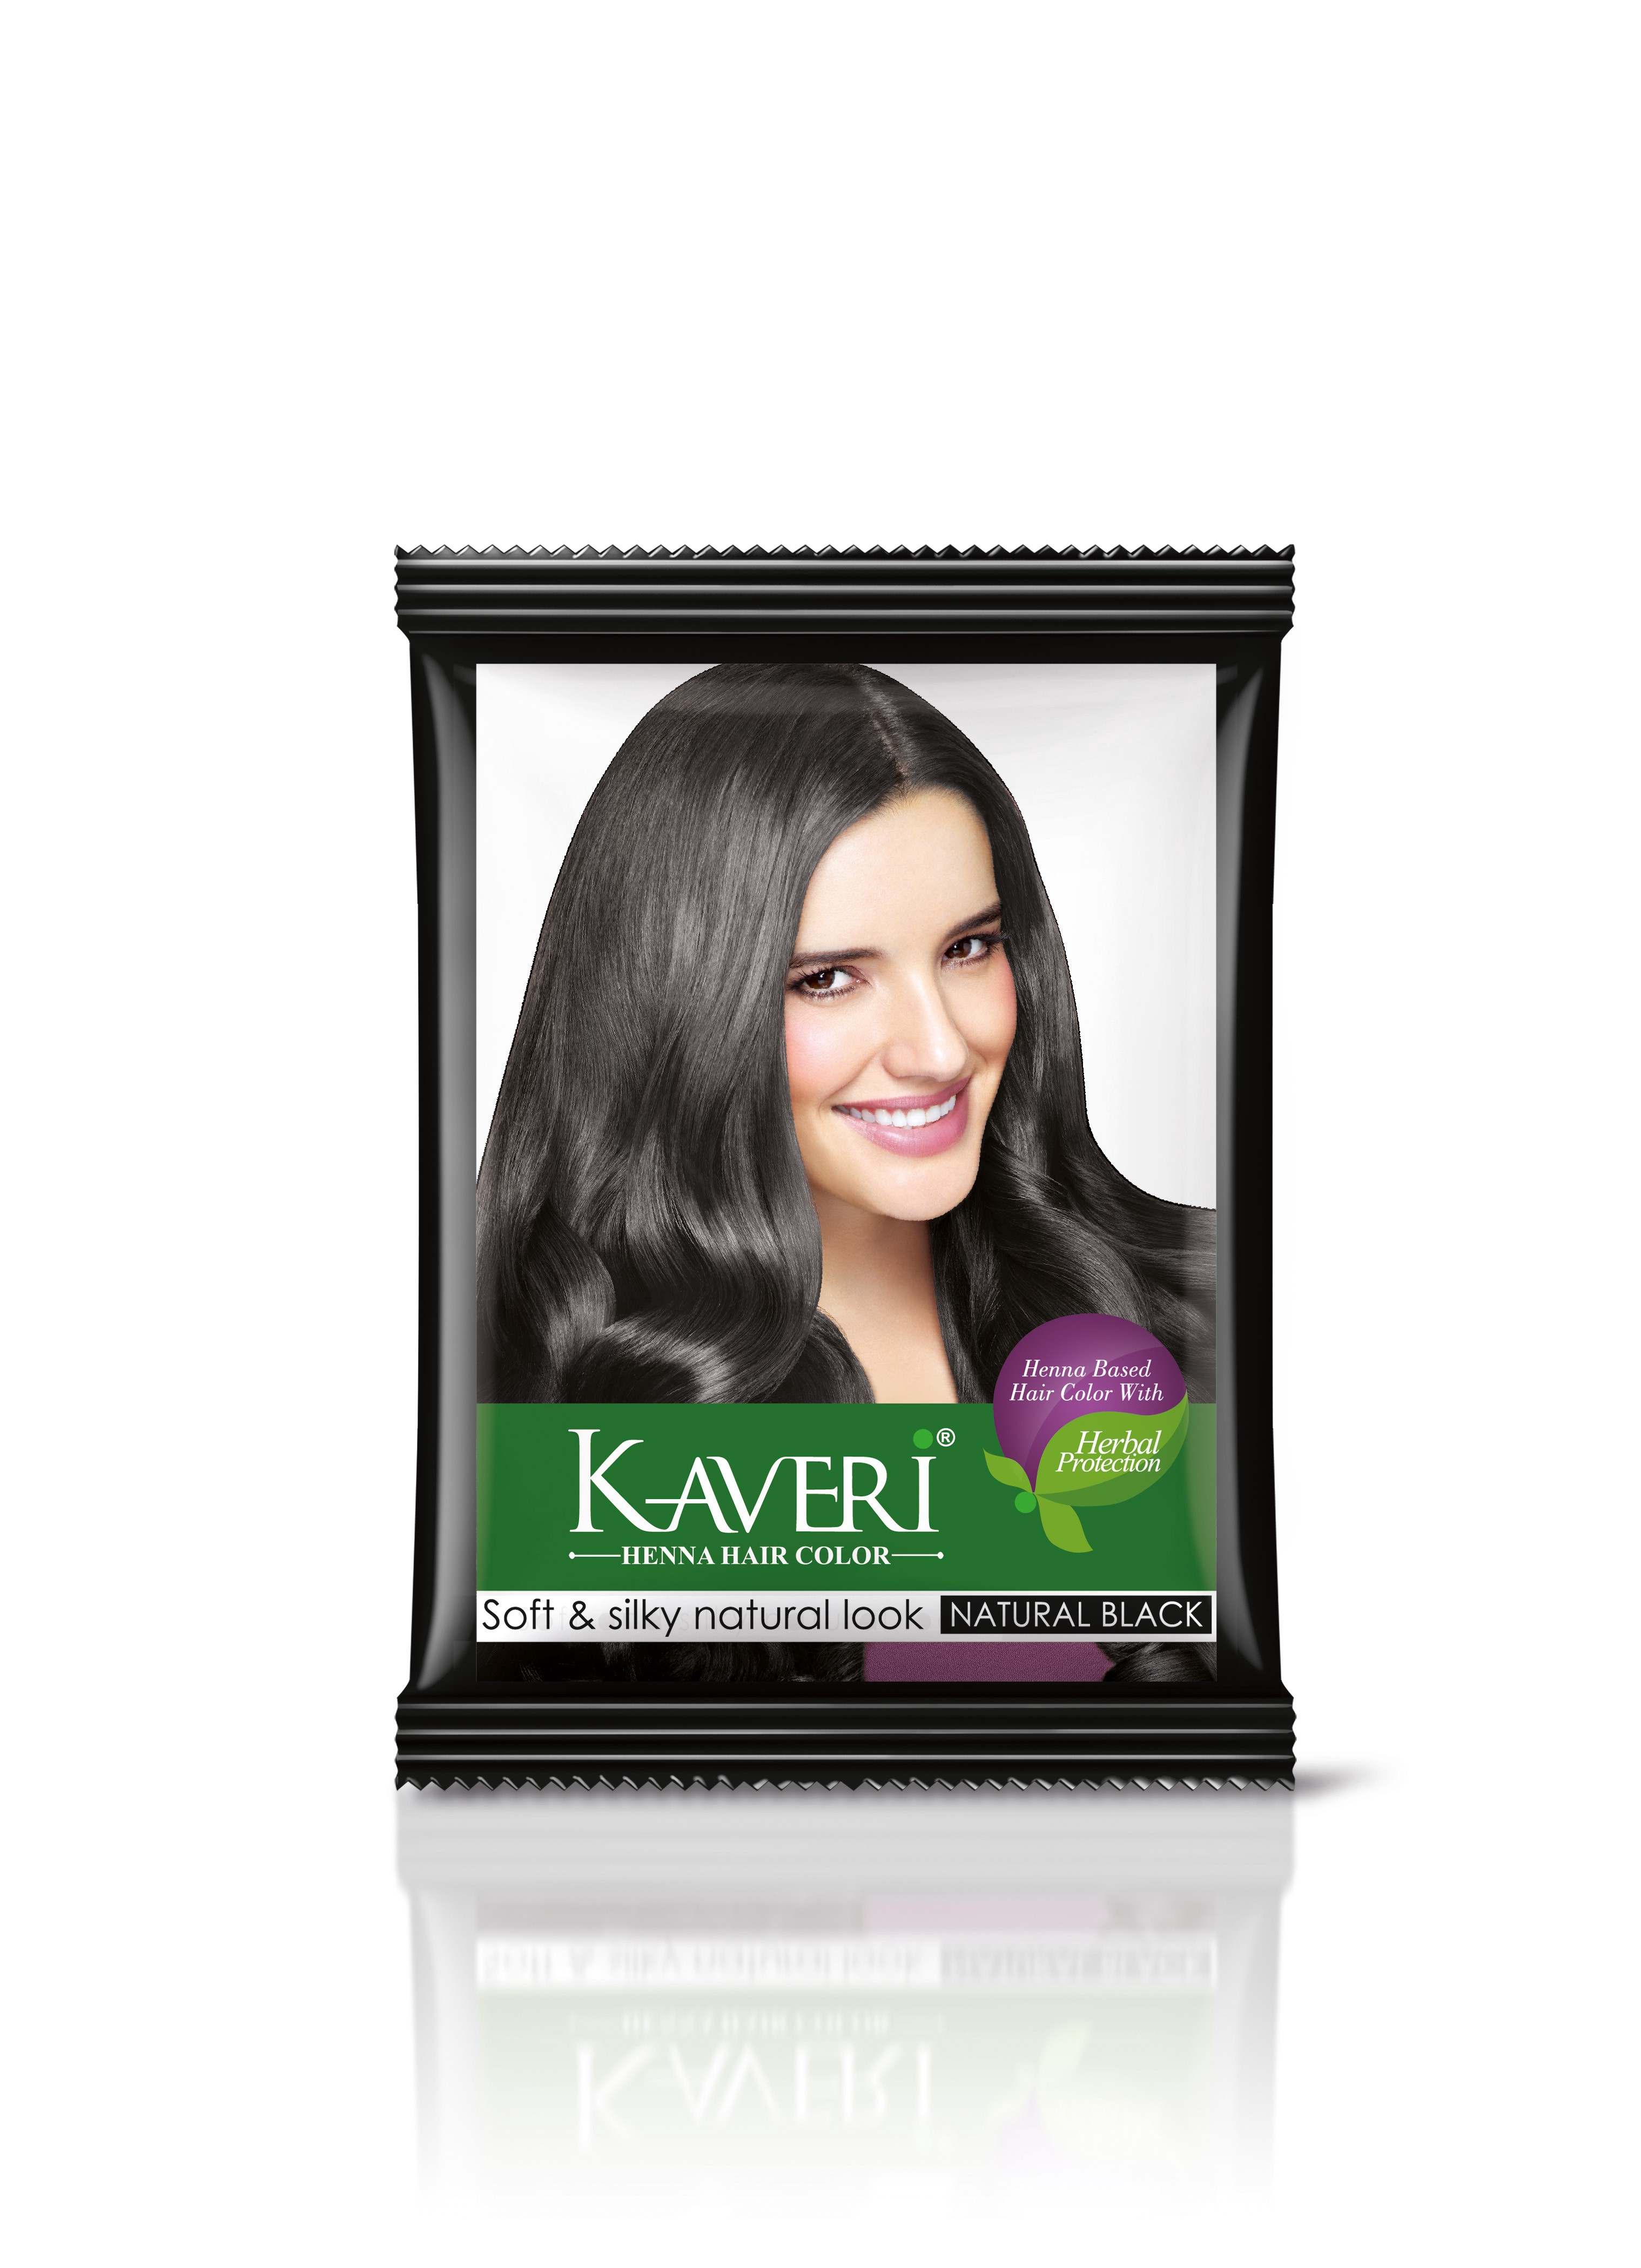 KAVERI HENNA HAIR COLOR - Velnik India Private Limited - Medium